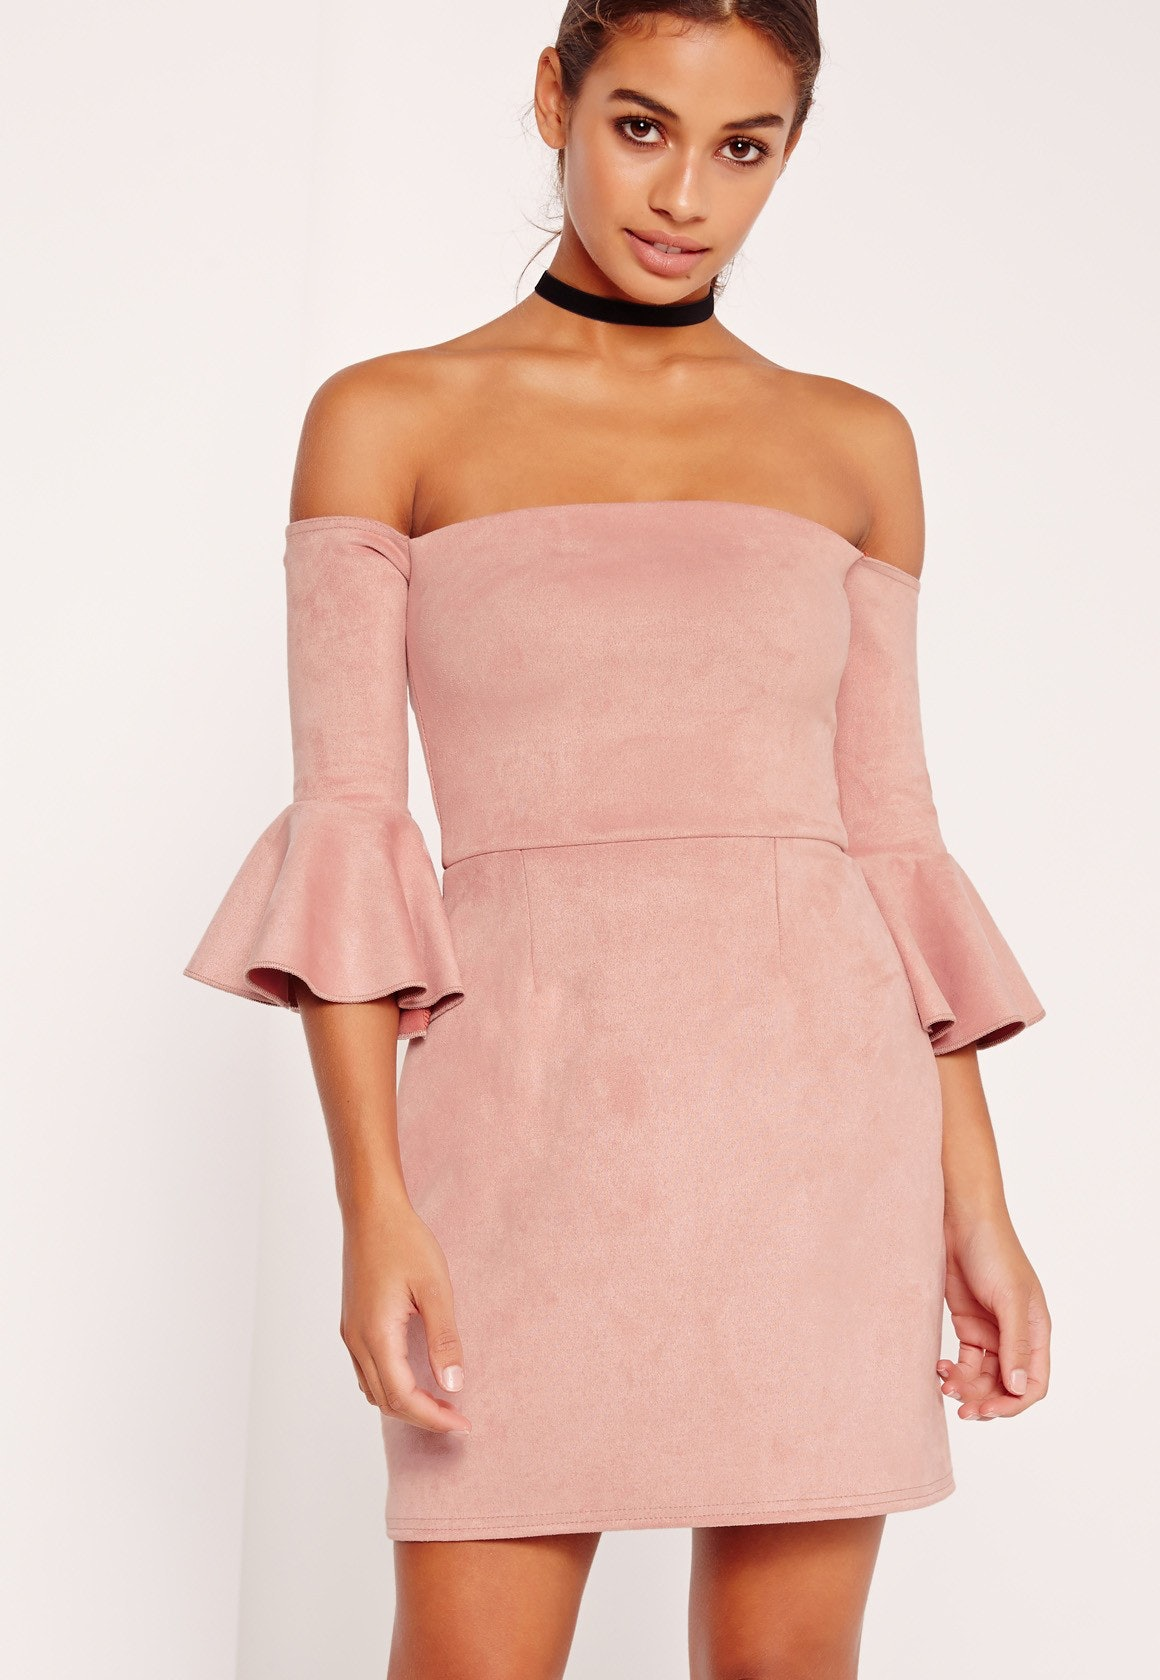 12 New Year\'s Eve Dresses You Can Wear More Than Once — PHOTOS